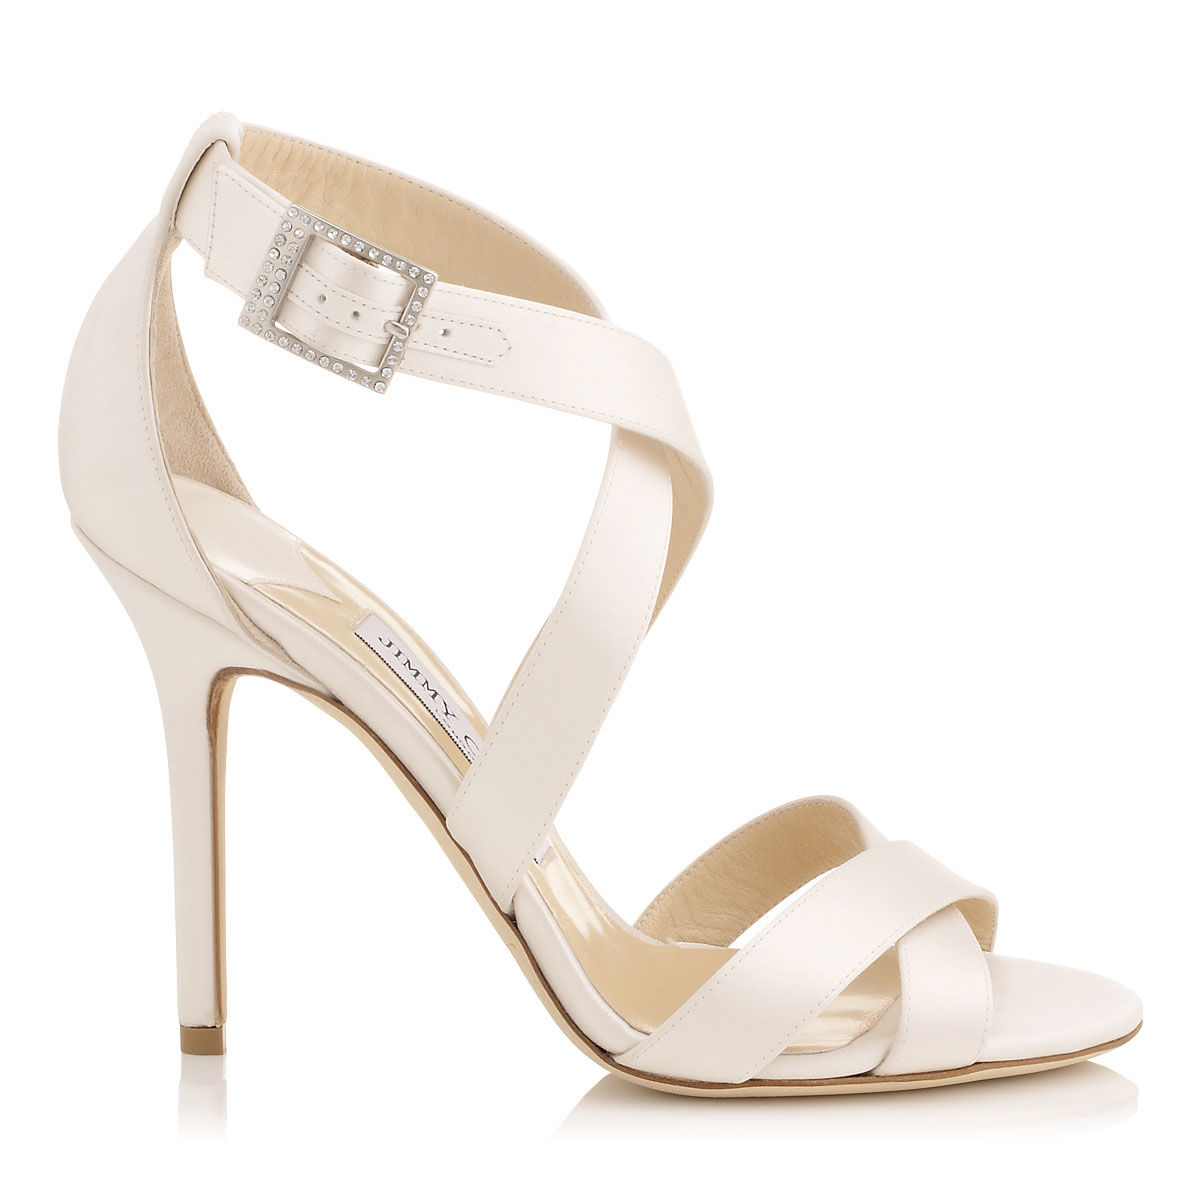 c6fa710c184 Jimmy Choo Lottie Ivory Satin Strappy Sandals in Pink - Lyst